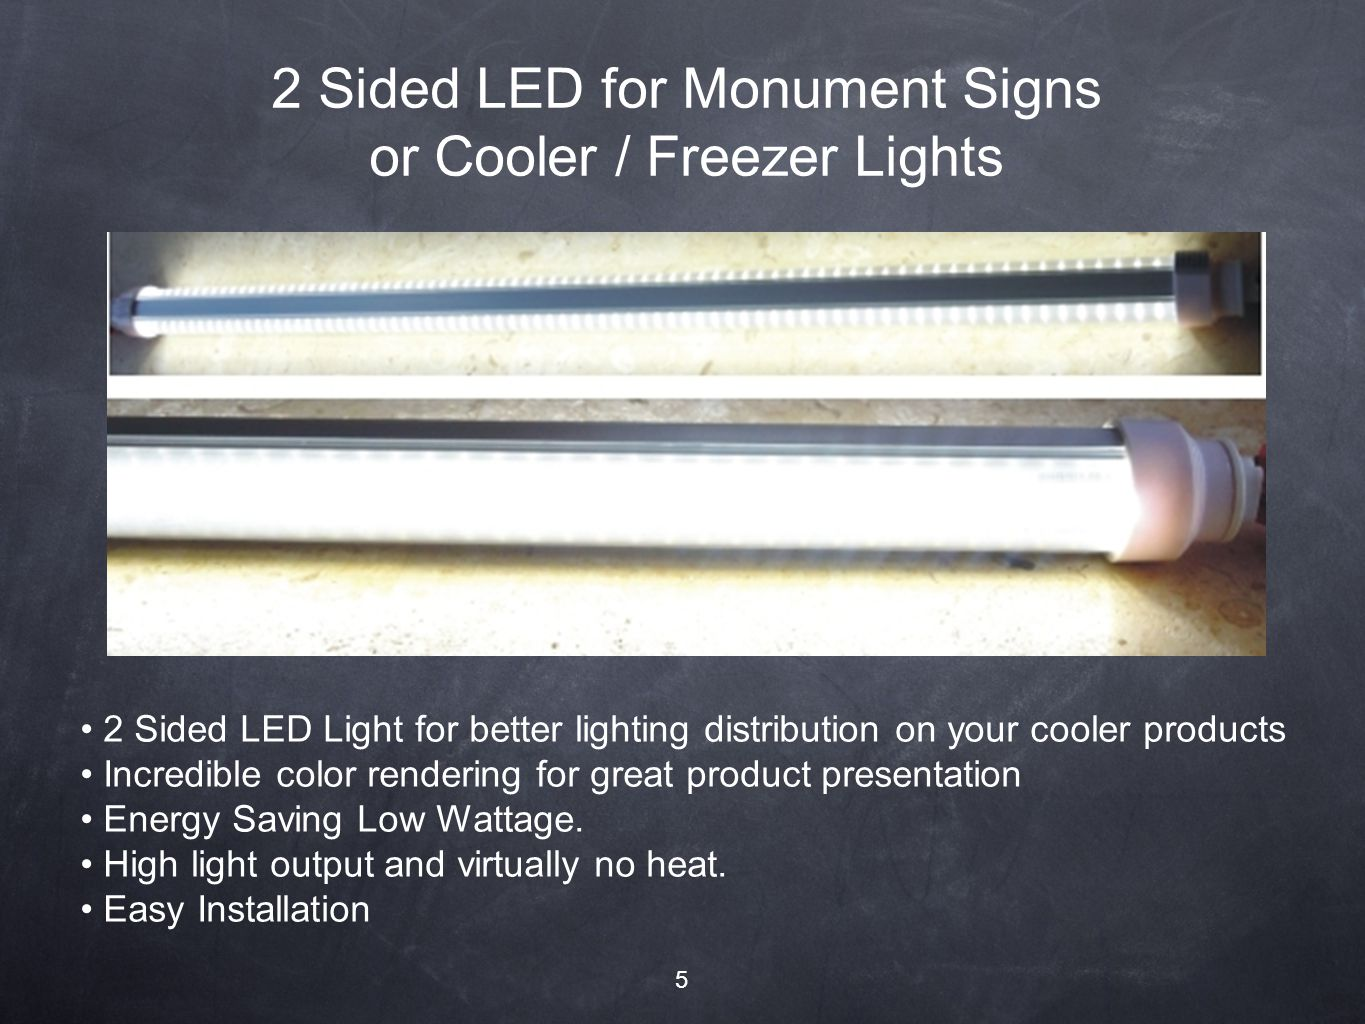 2 Sided LED Light for better lighting distribution on your cooler products Incredible color rendering for great product presentation Energy Saving Low Wattage.